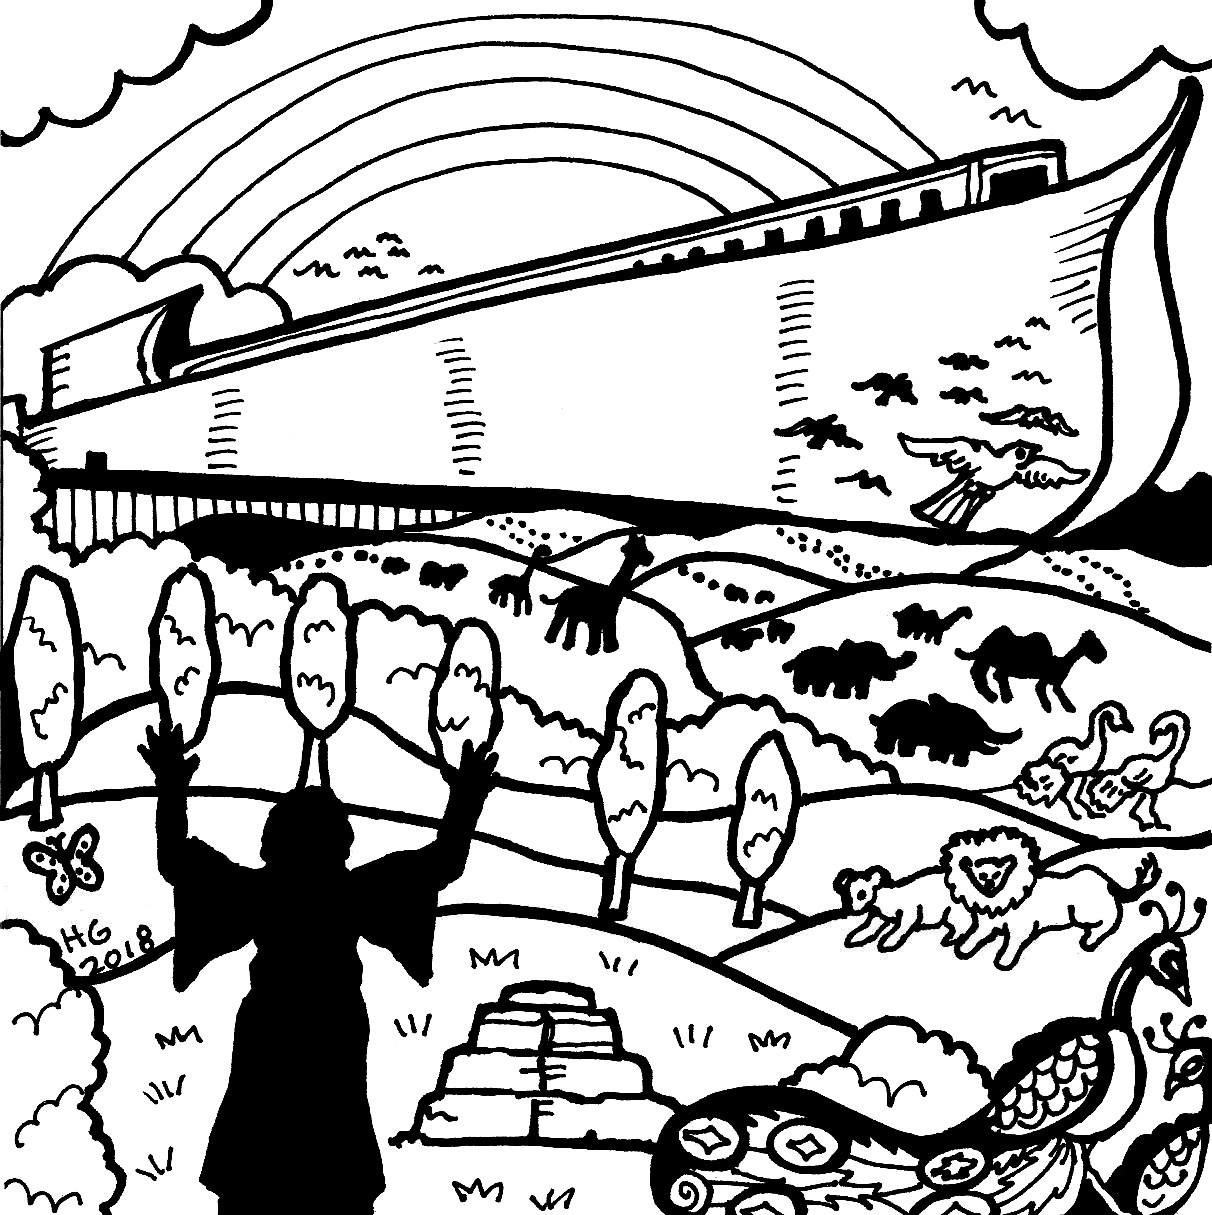 coloring picture noah noah and the flood coloring pages at getcoloringscom picture noah coloring